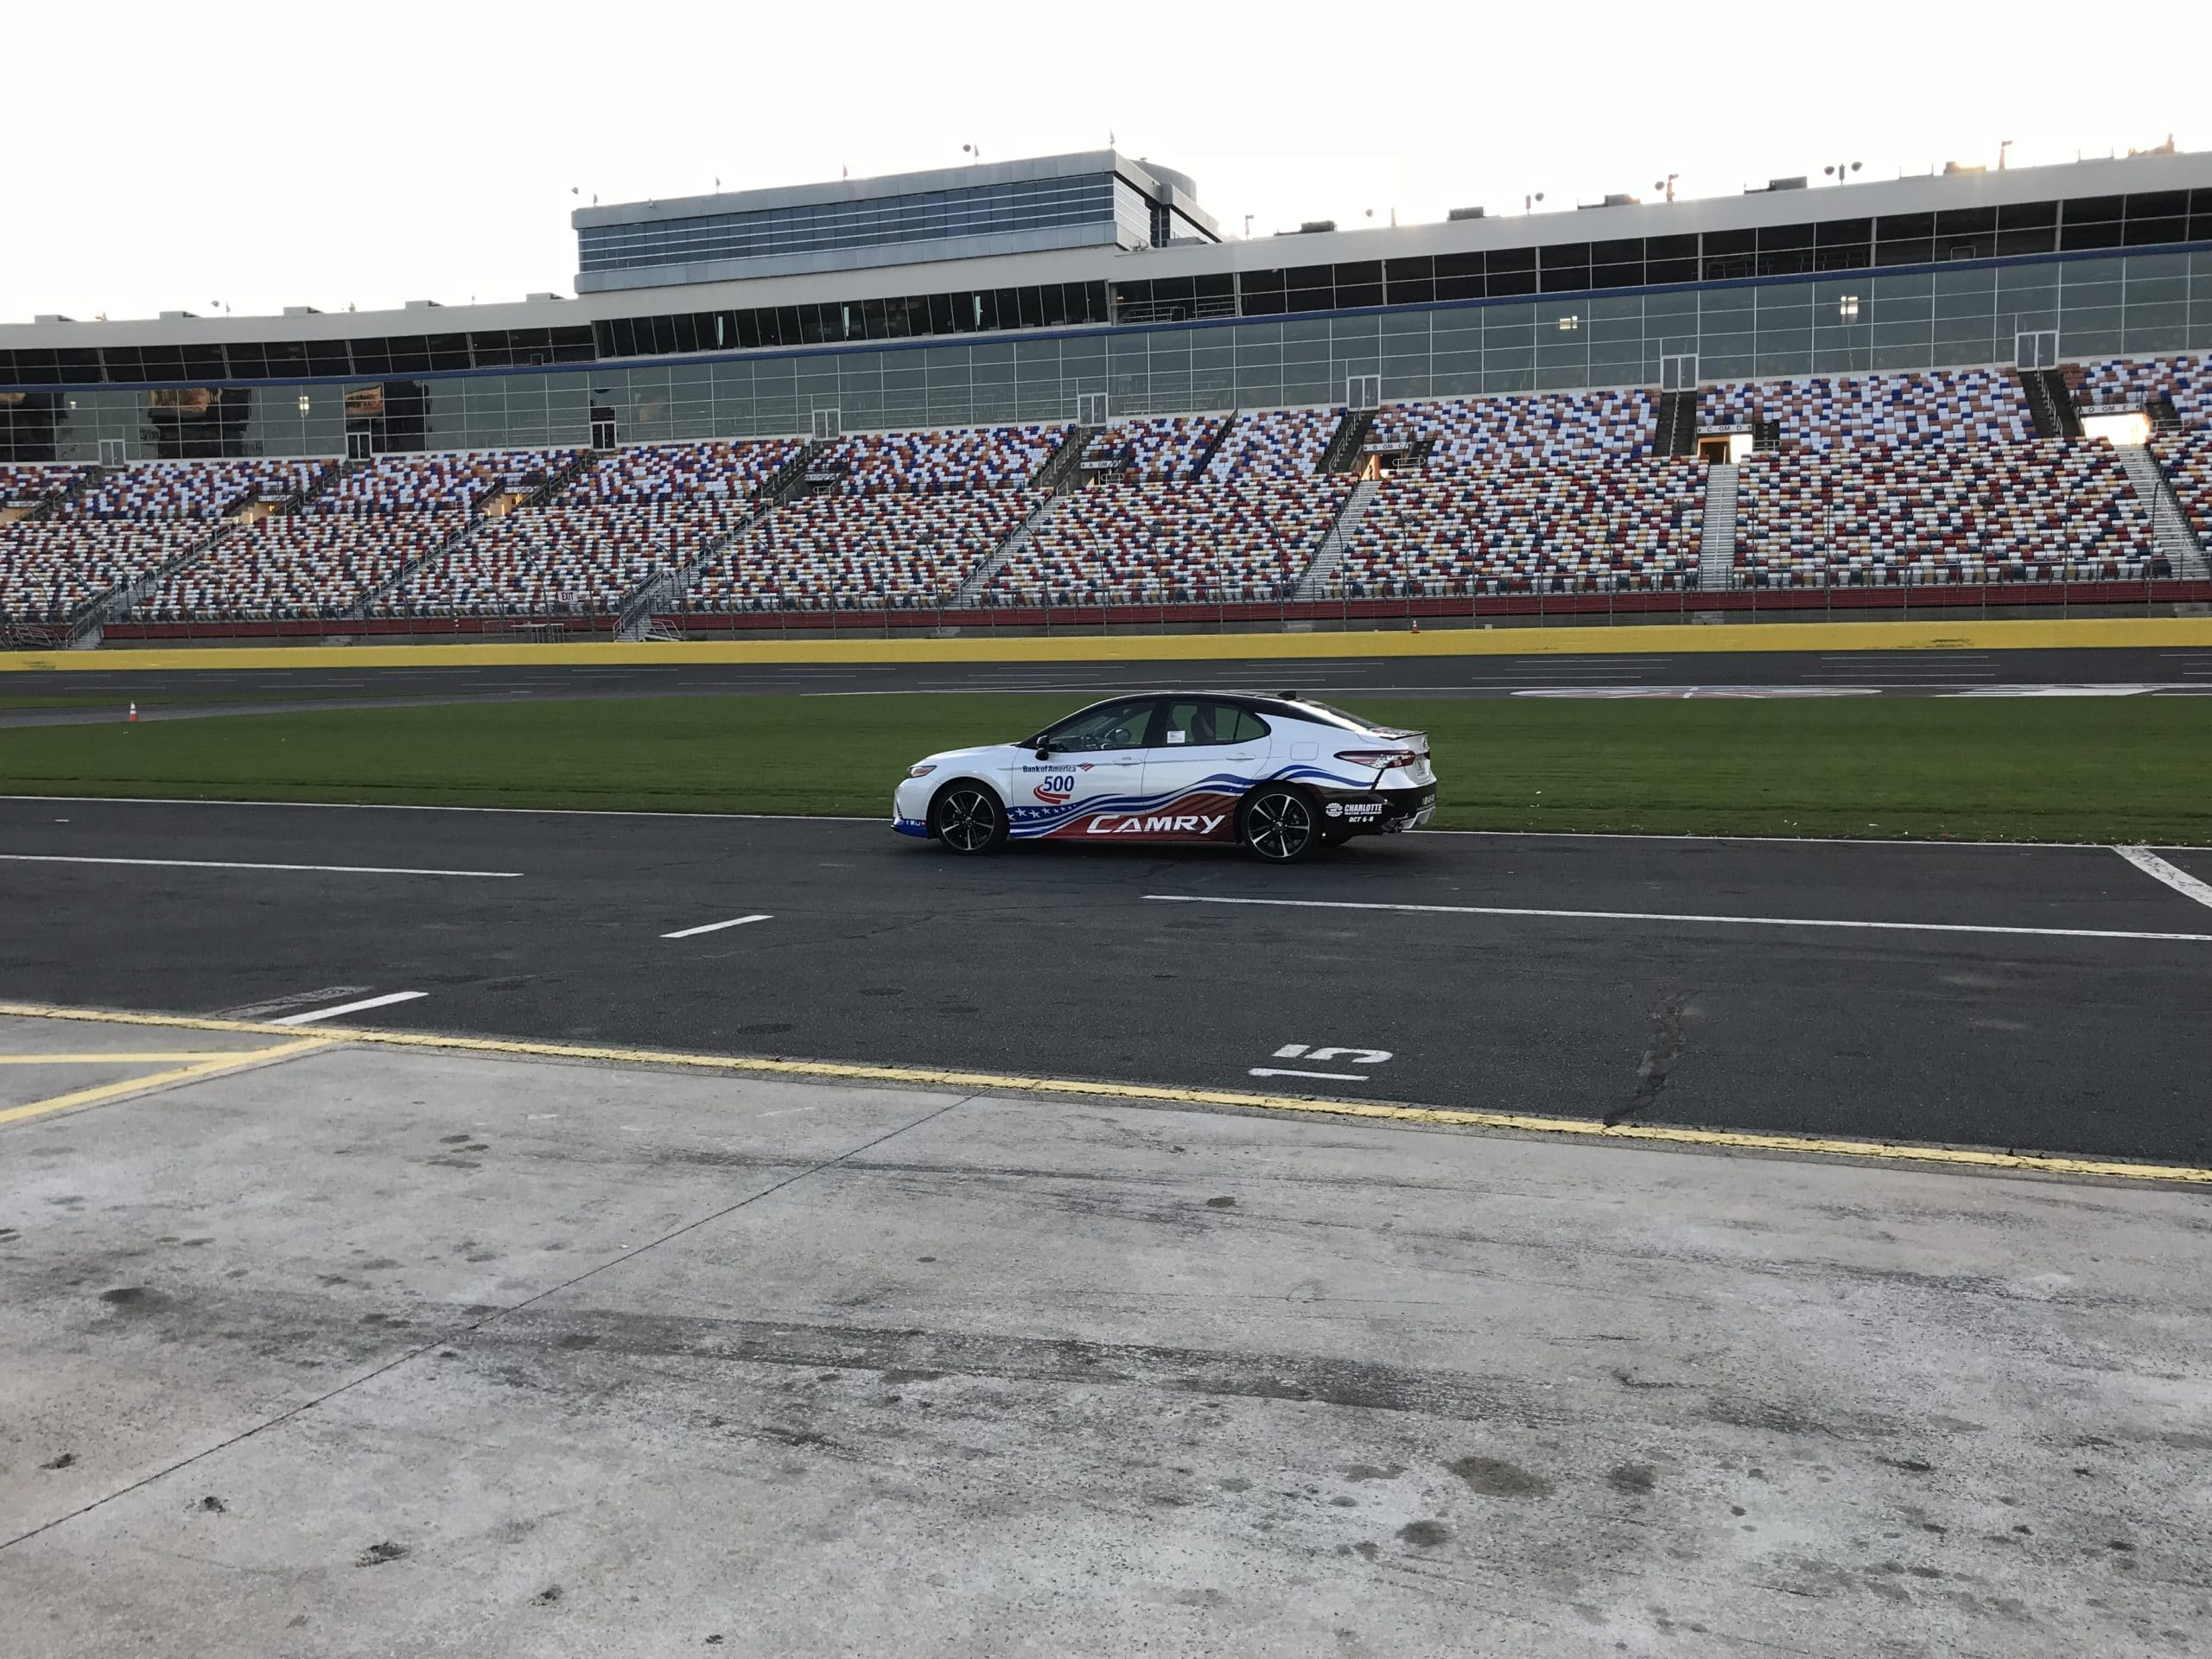 Charlotte Motor Speedway – Much more than just left turns